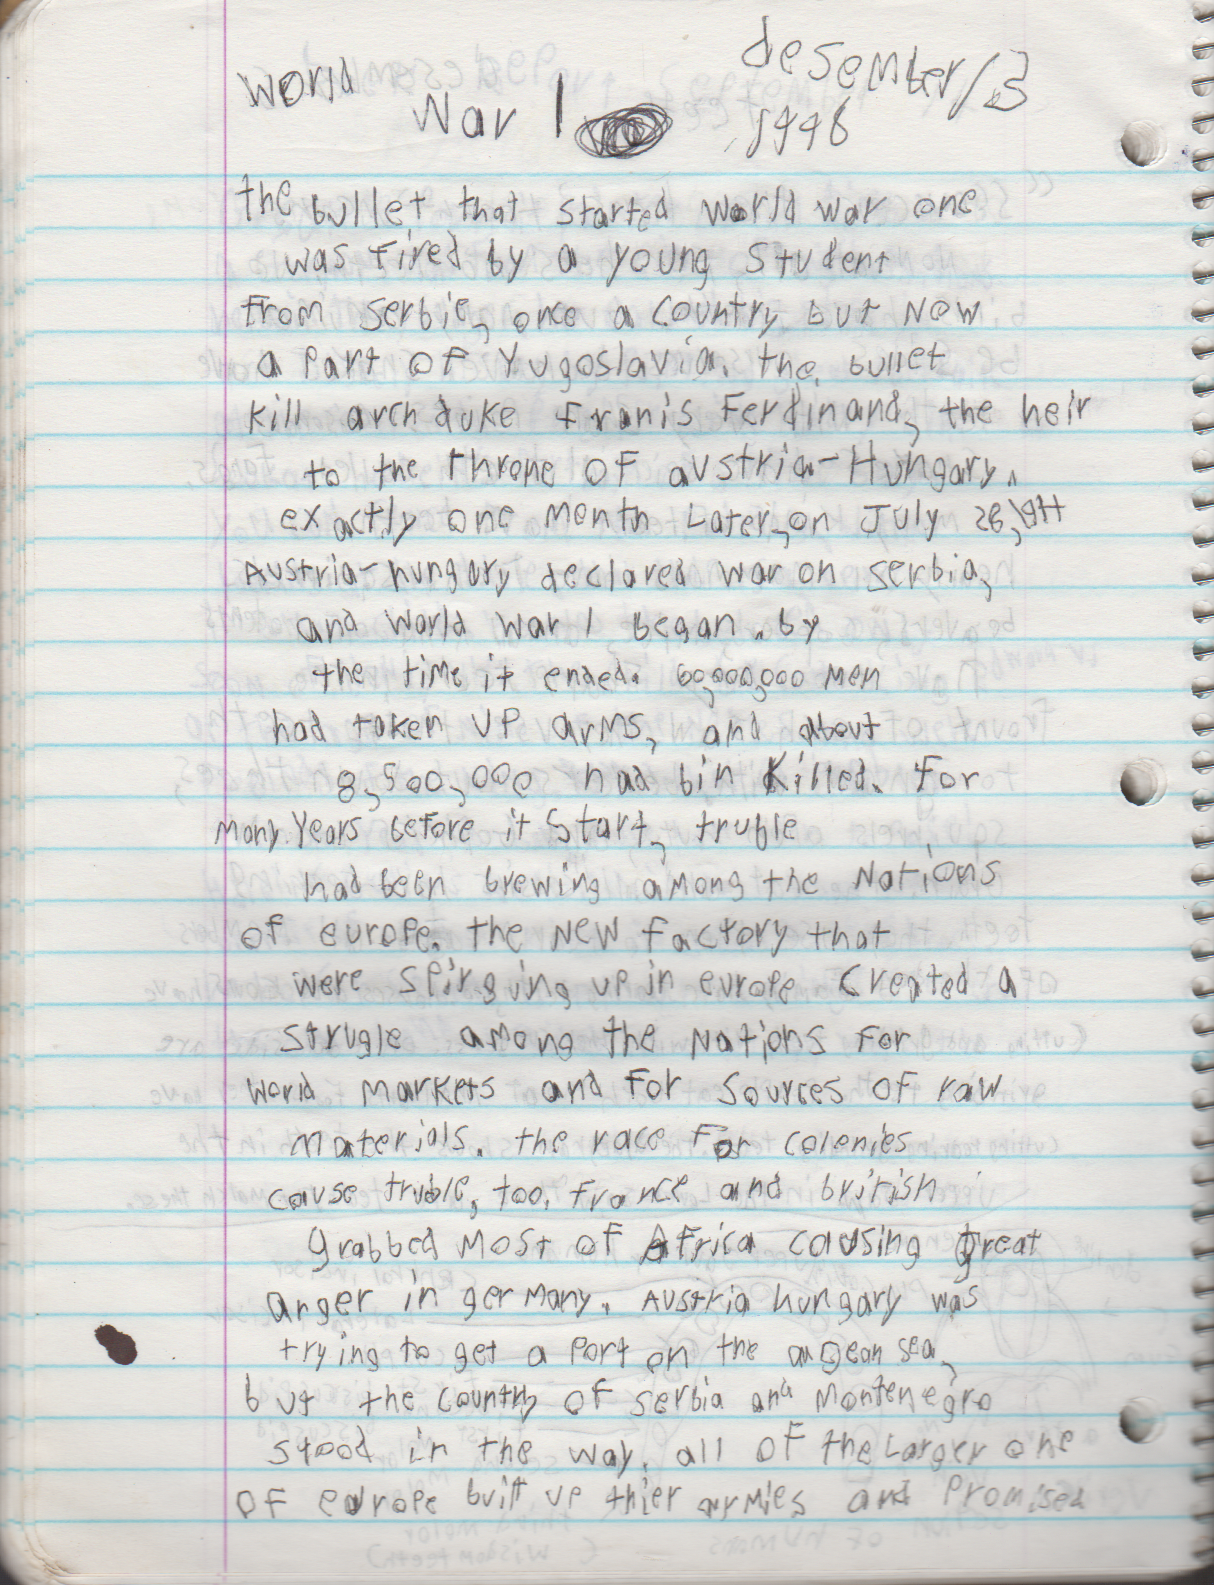 1996-08-18 - Saturday - 11 yr old Joey Arnold's School Book, dates through to 1998 apx, mostly 96, Writings, Drawings, Etc-077.png